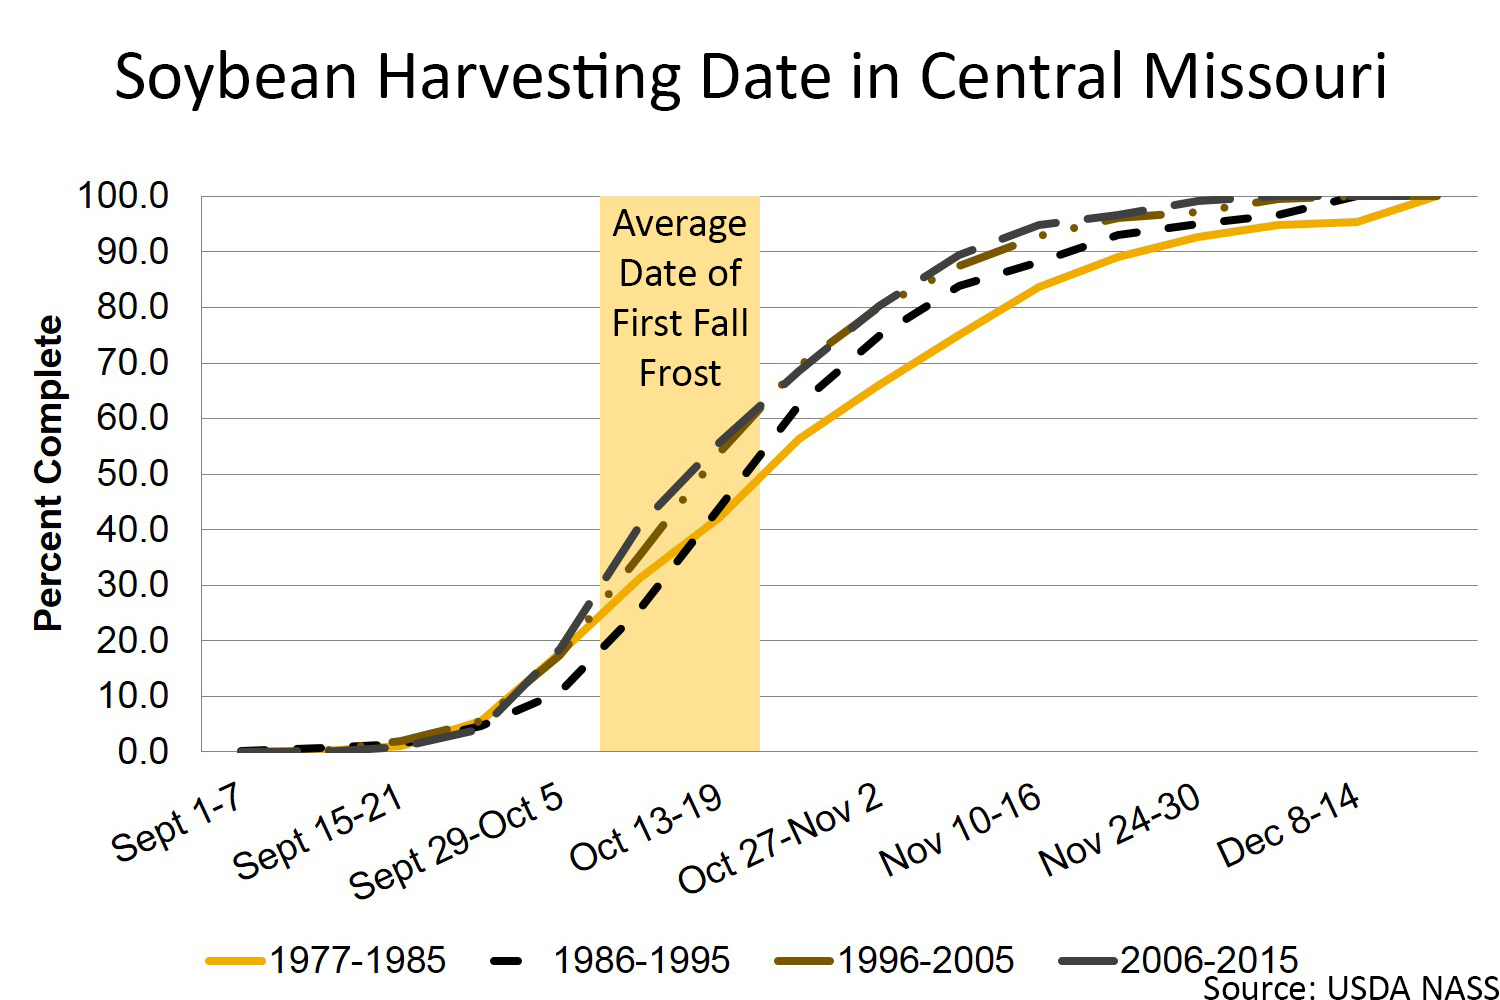 Soybean harvesting date in Central Missouri chart